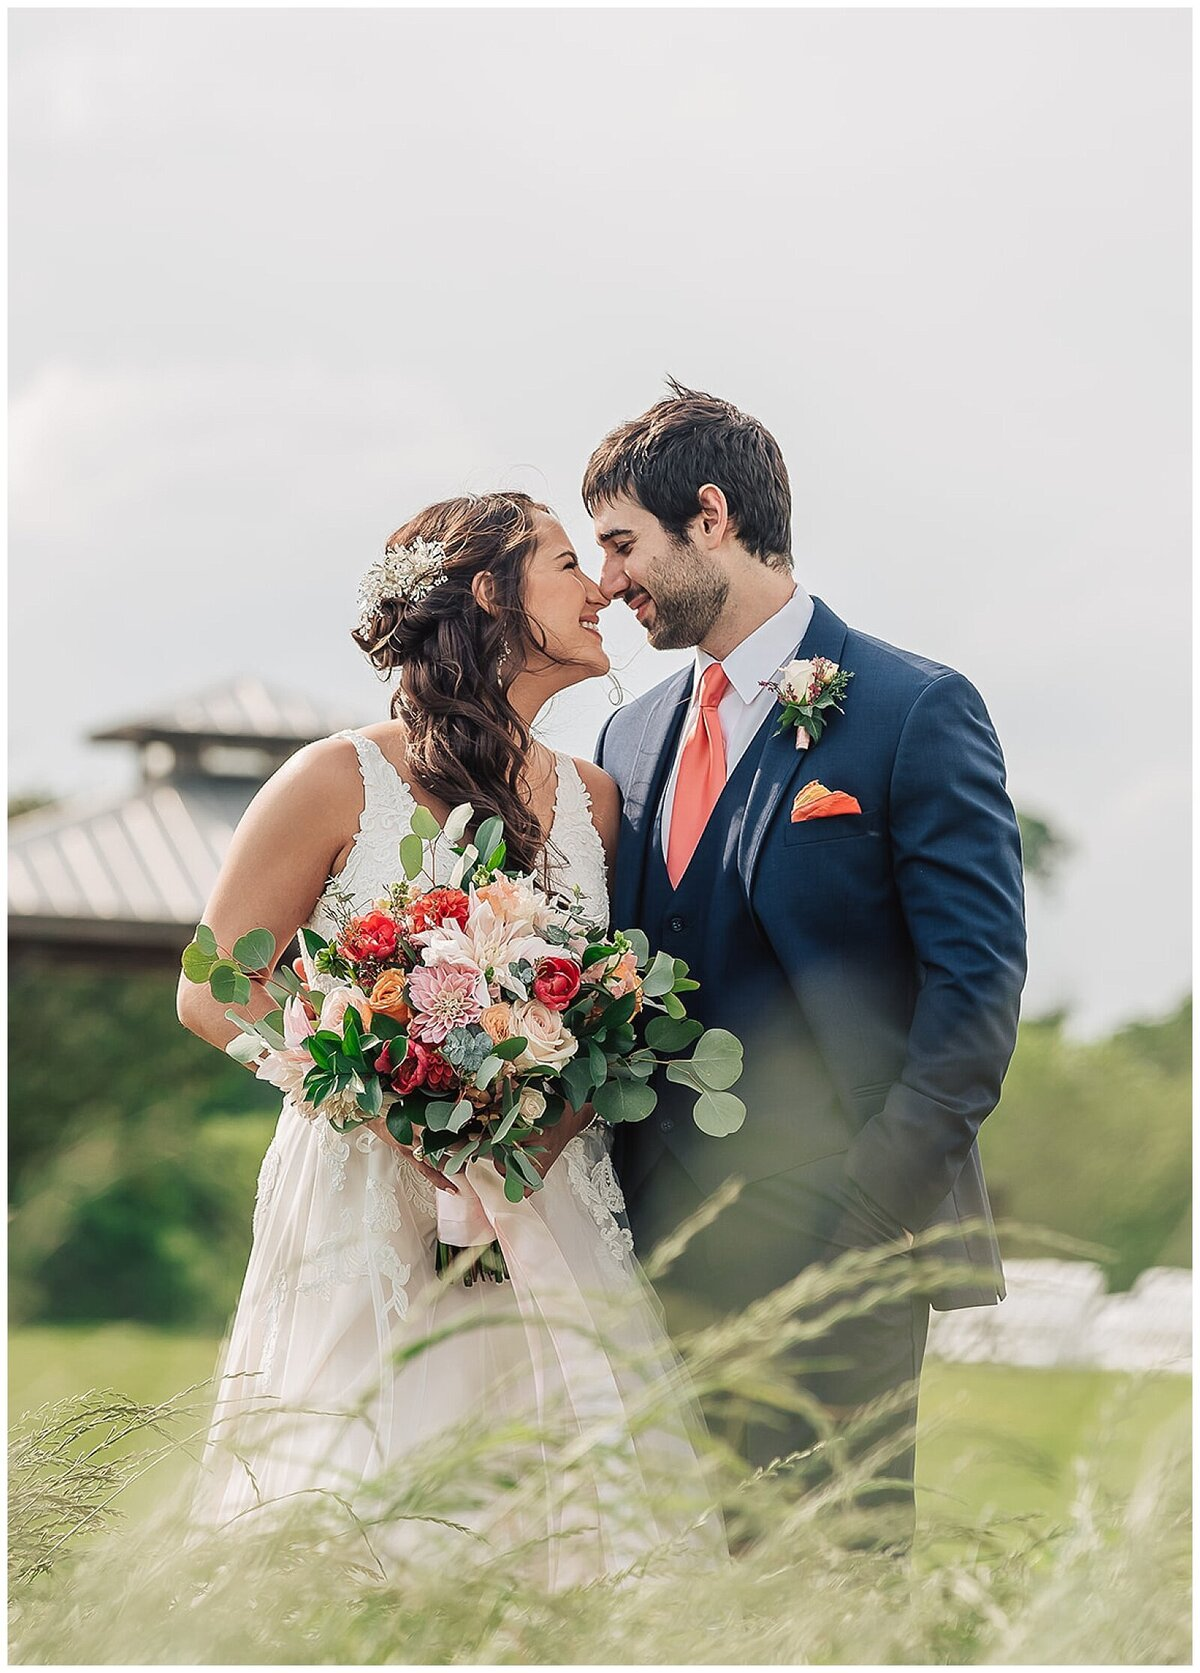 Vibrant Boho Wedding at Emery's Buffalo Creek - Houston Wedding Venue_0057